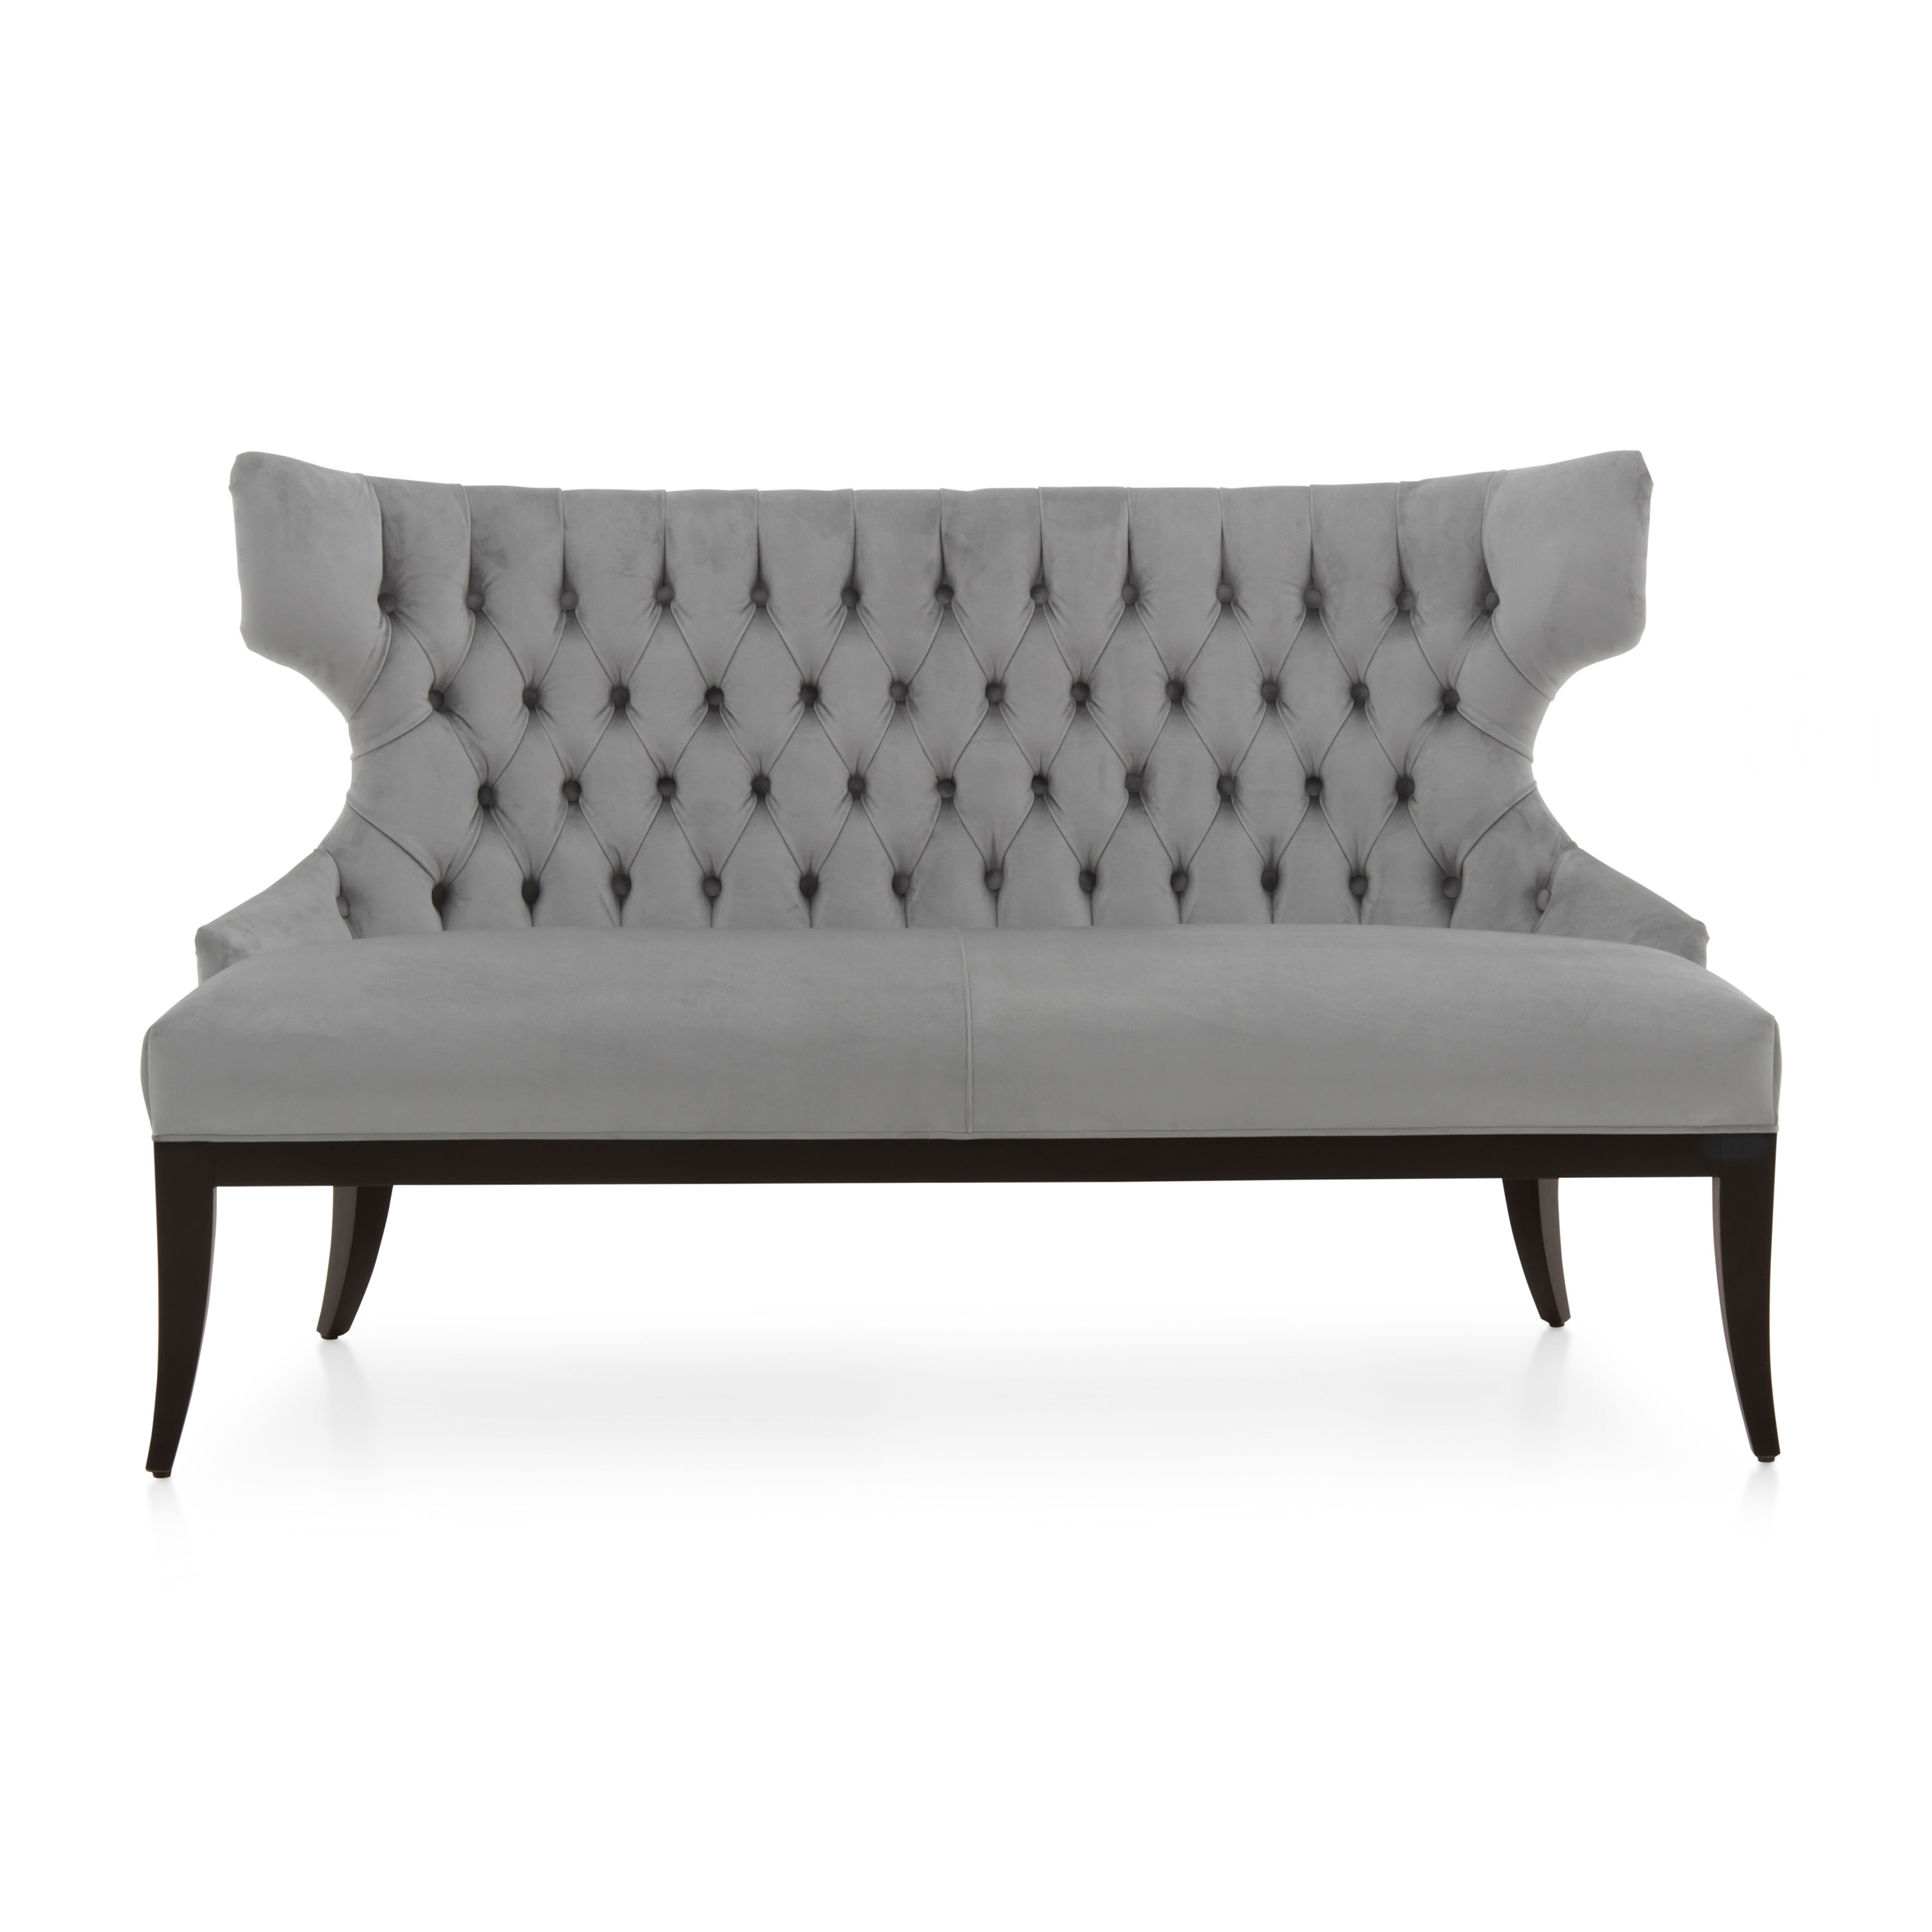 Modern Style Sofa Made of Wood Irene | Sevensedie